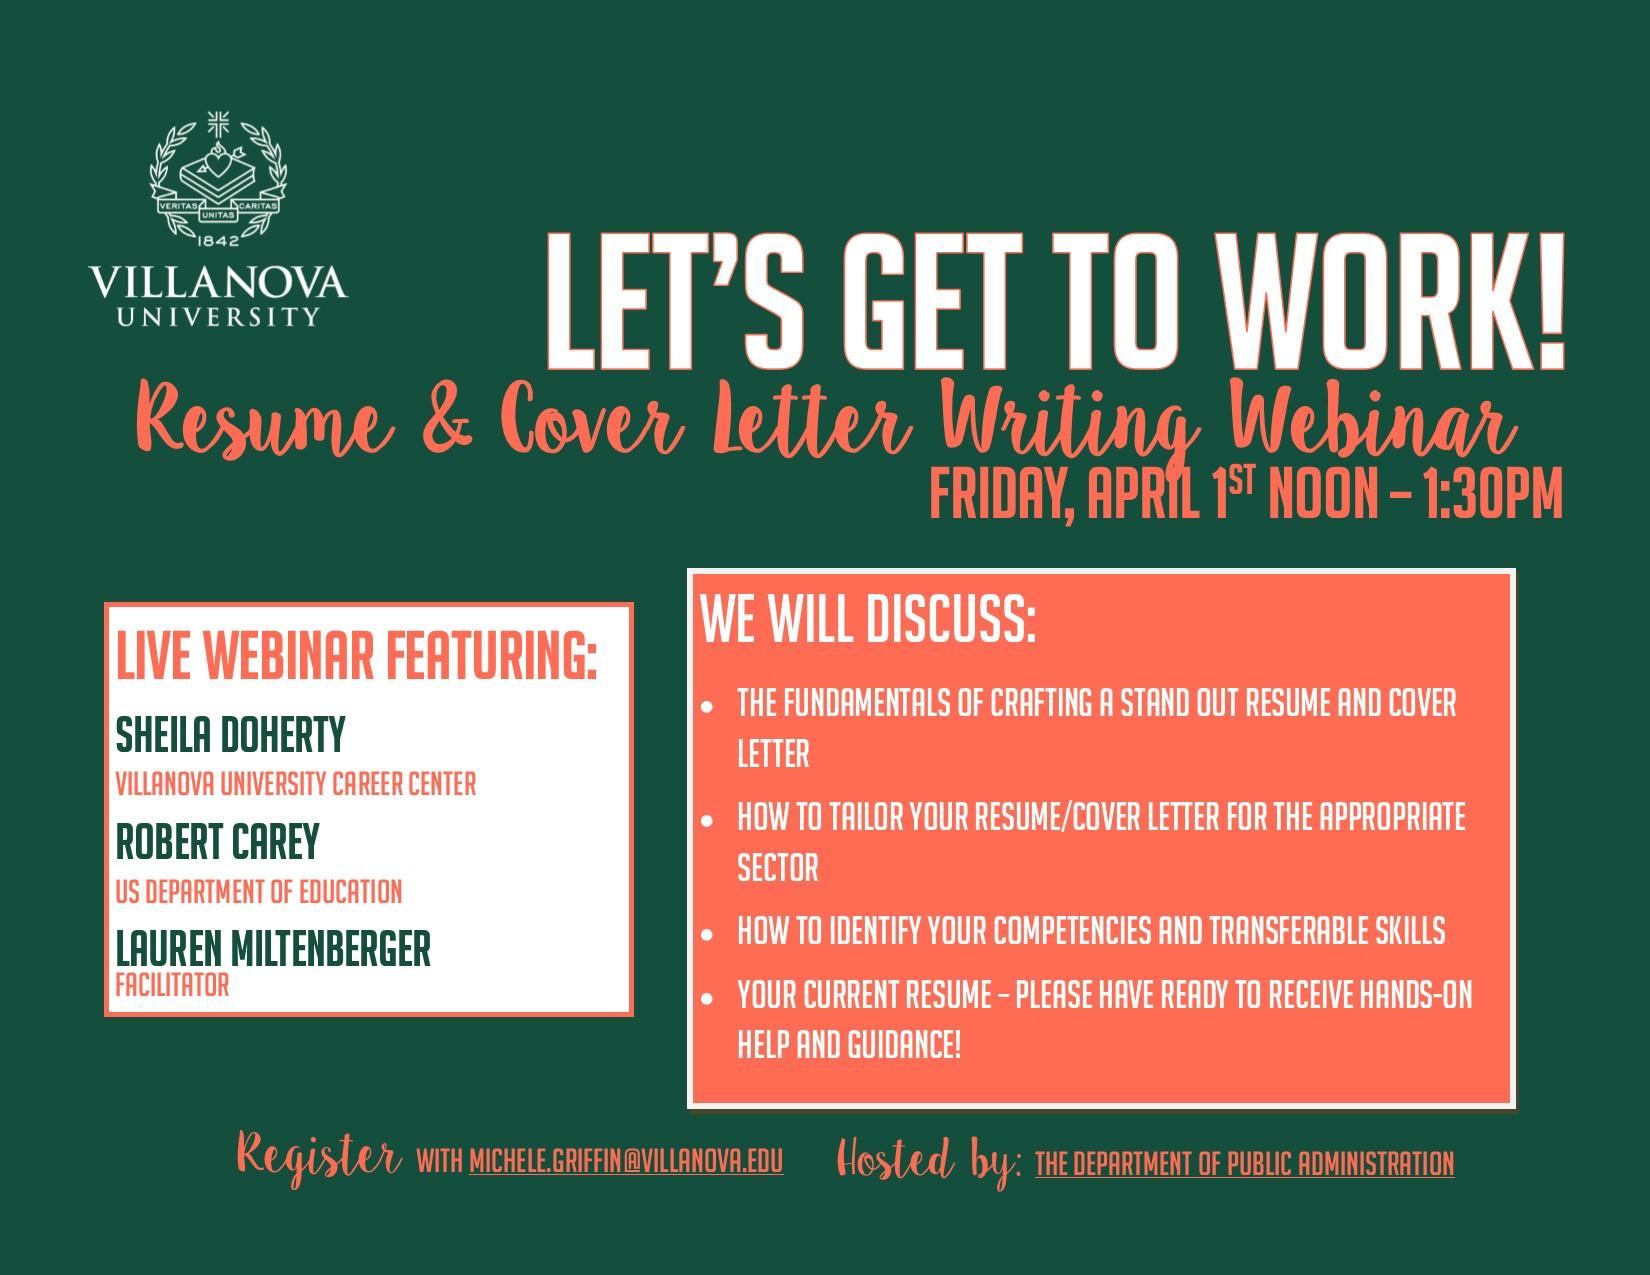 improve your resume or cover letter leaders lounge are you looking for ways to improve your cl resume we re hosting a webinar friday 1st just for that purpose let s get to work